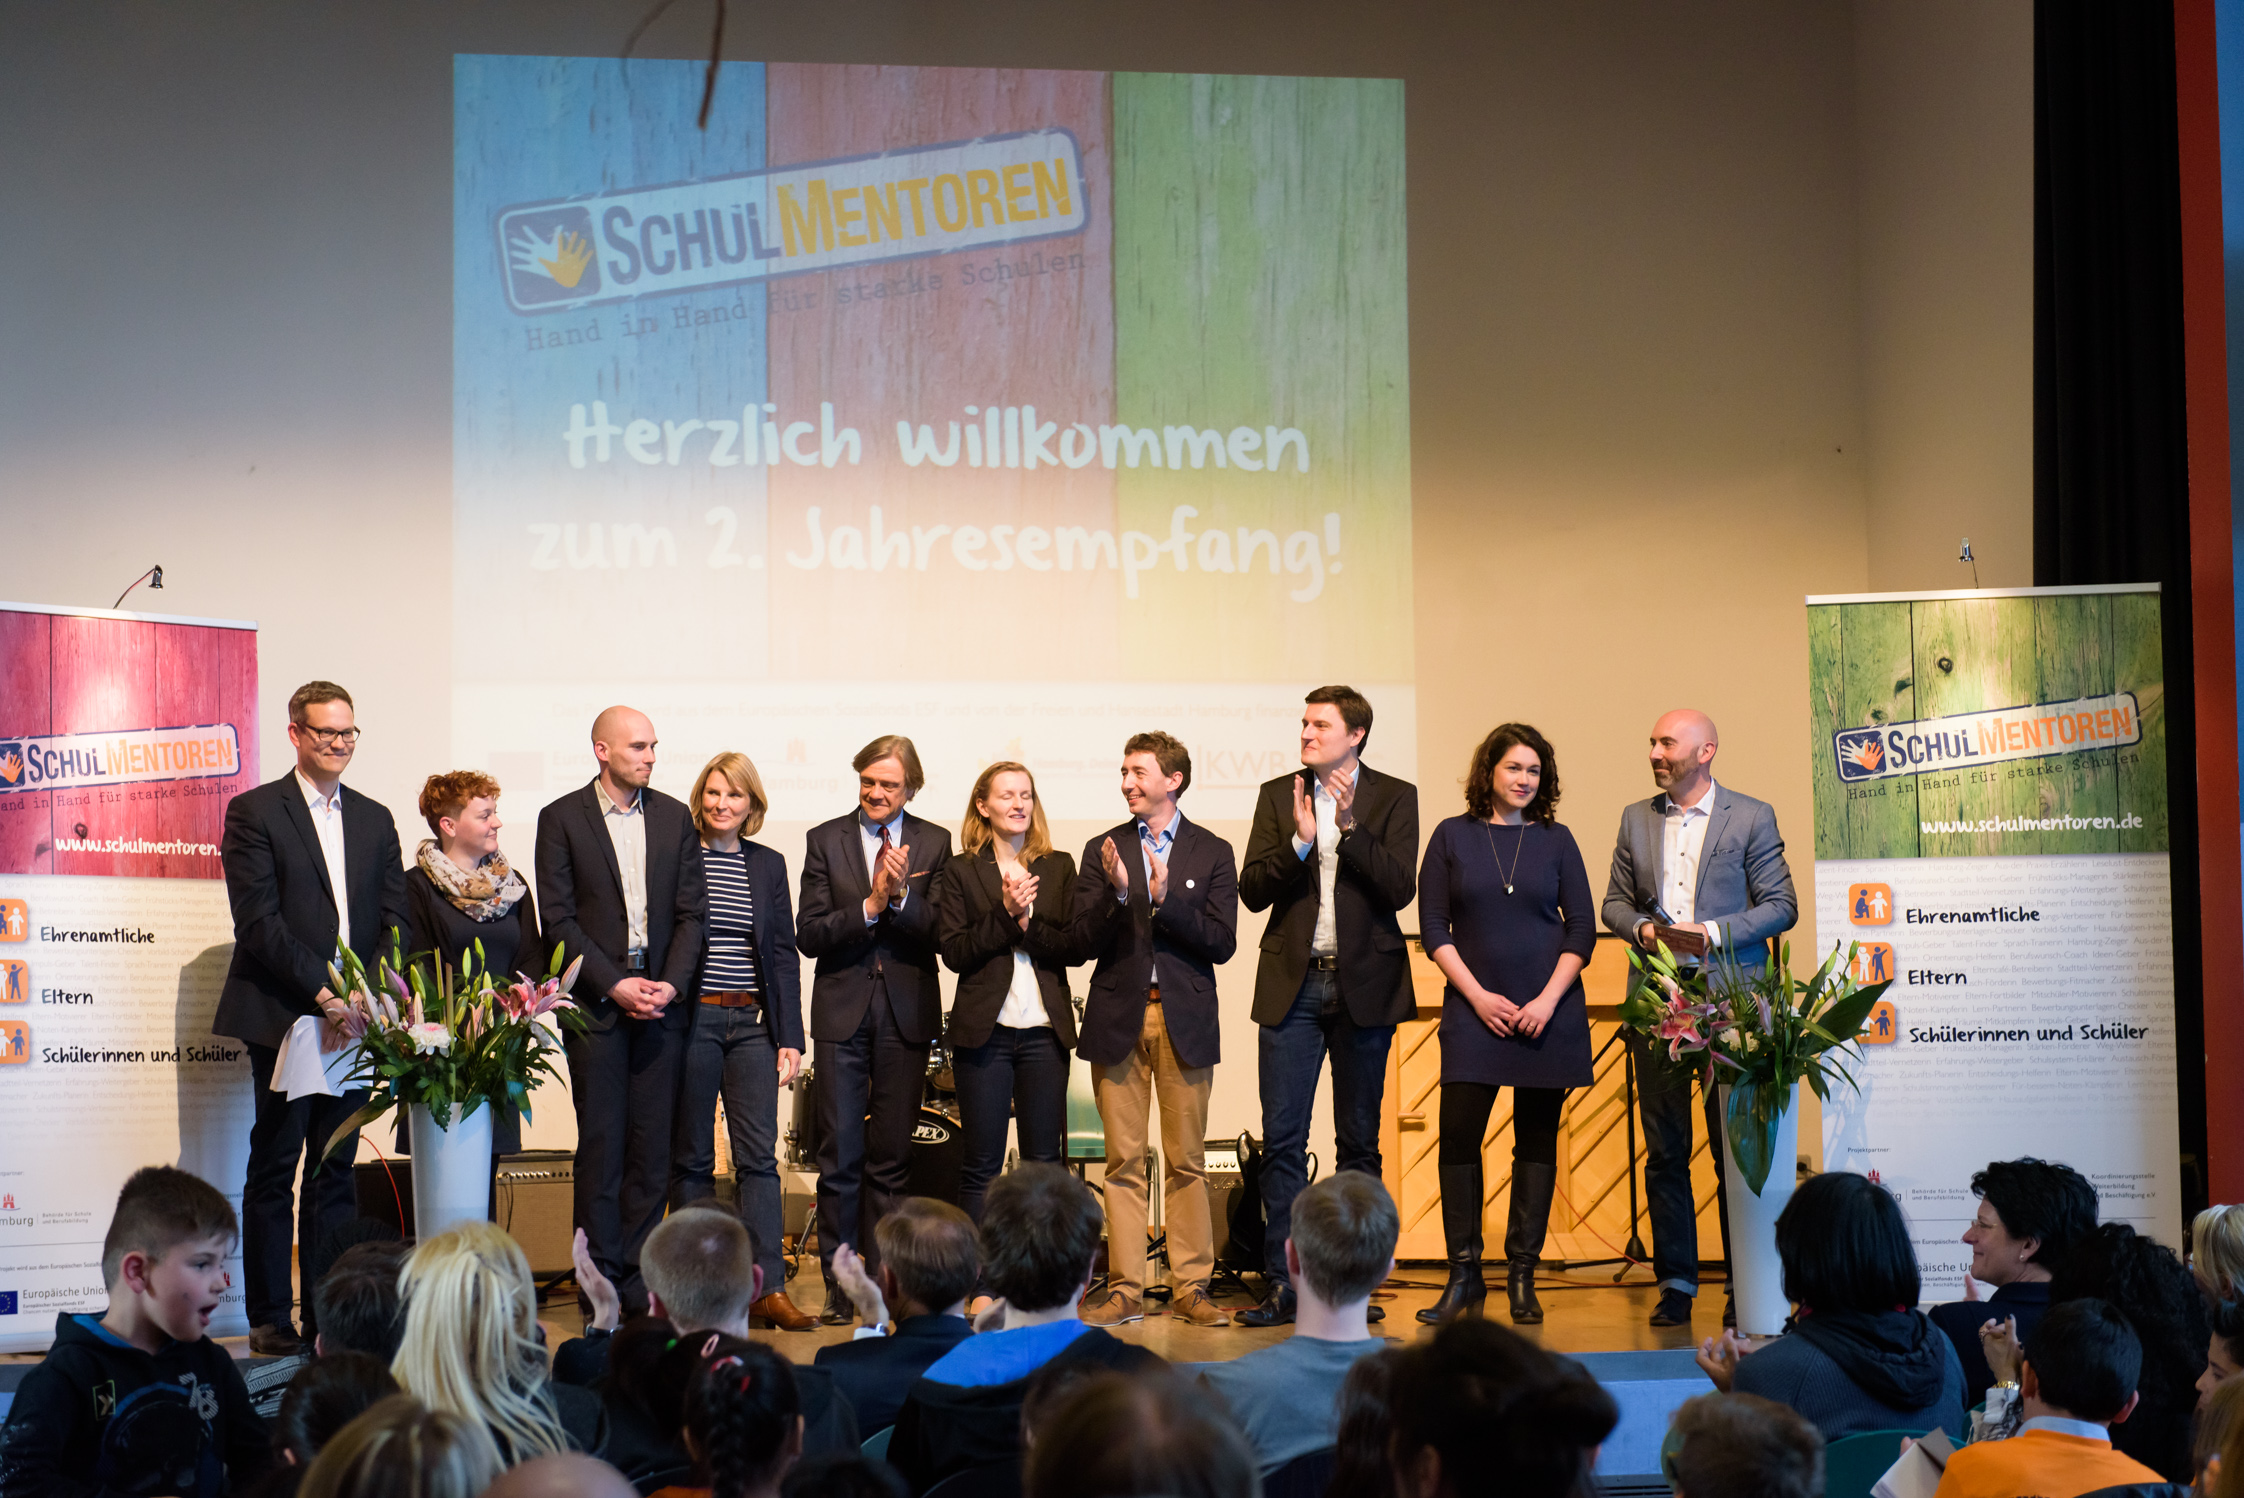 Schulmentoren Project Team at annual reception on April 28,2016